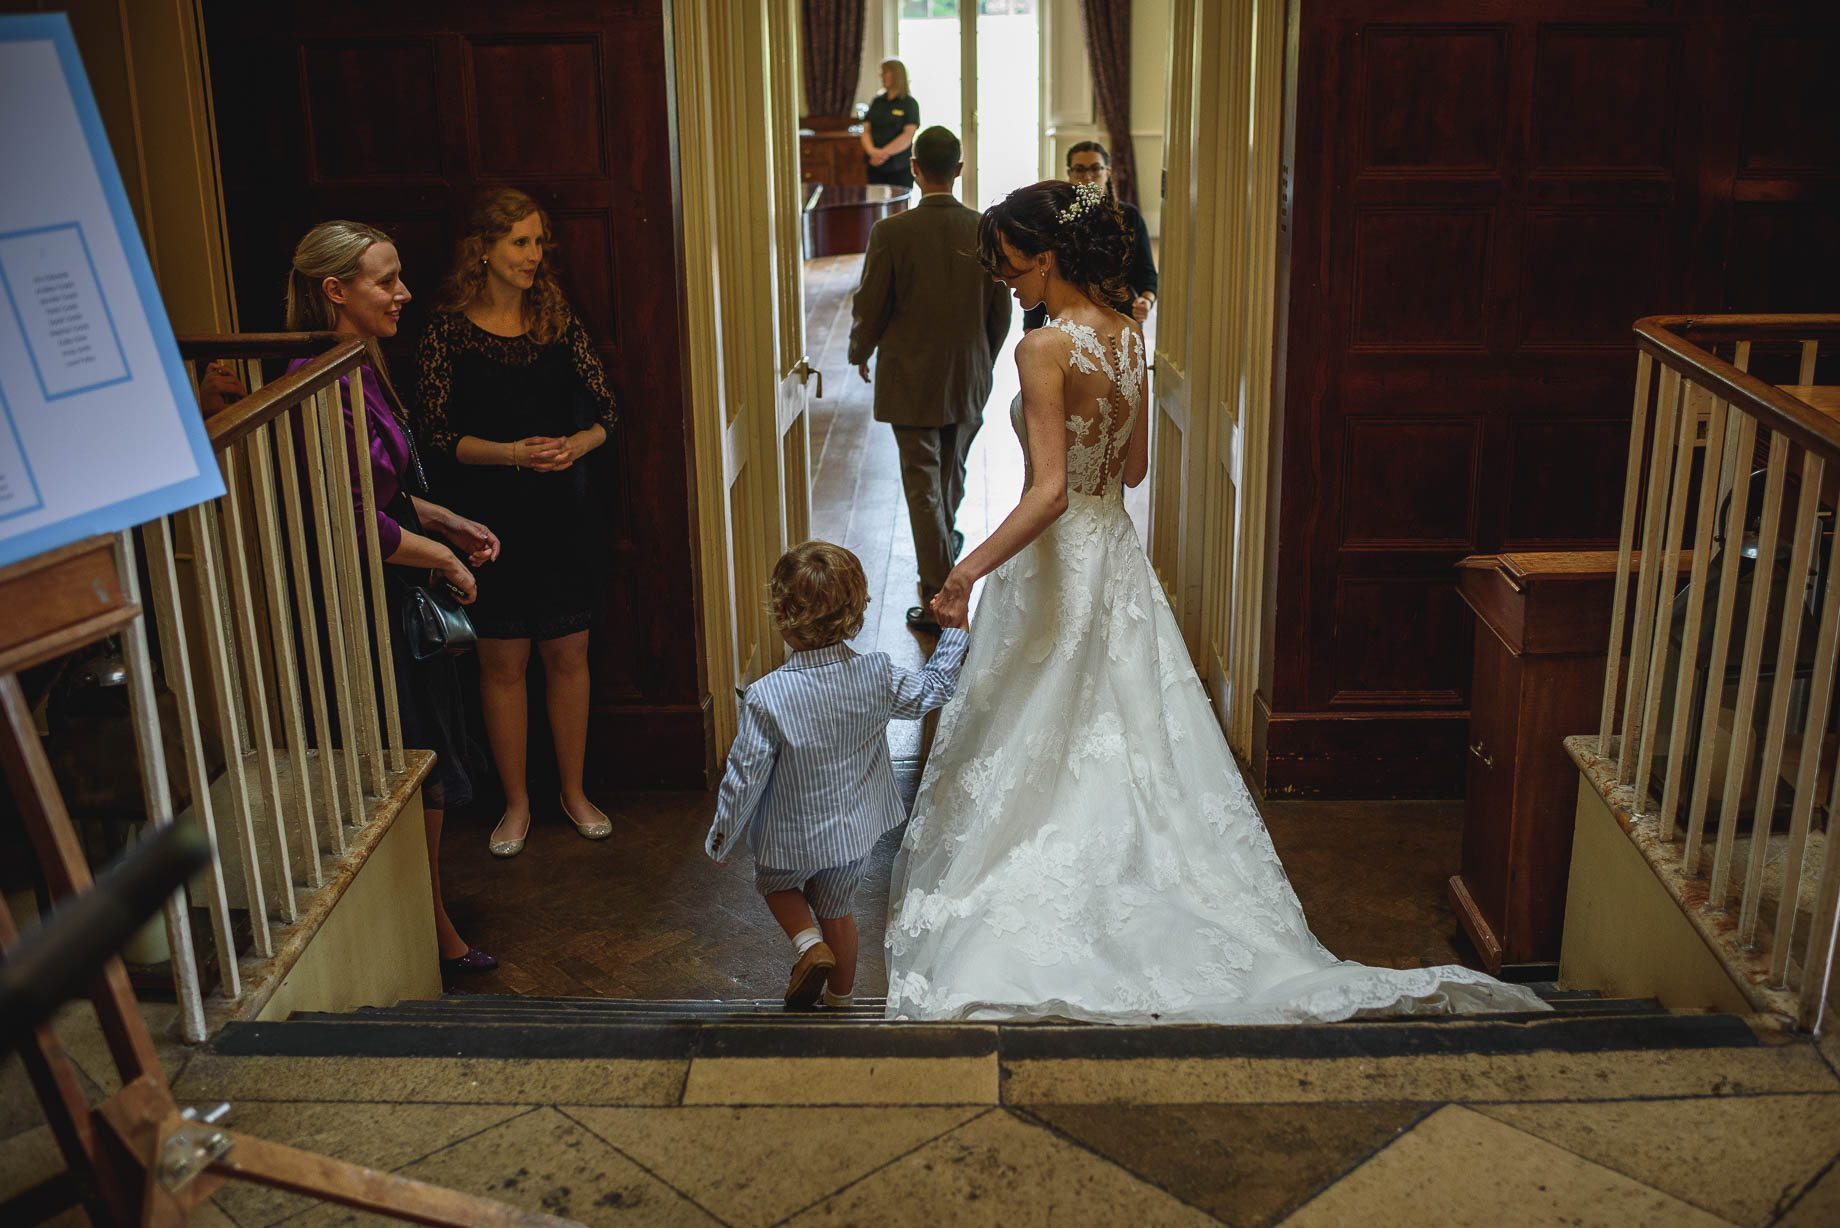 Hertfordshire wedding photography - Sarah and Stephen by Guy Collier Photography (108 of 161)